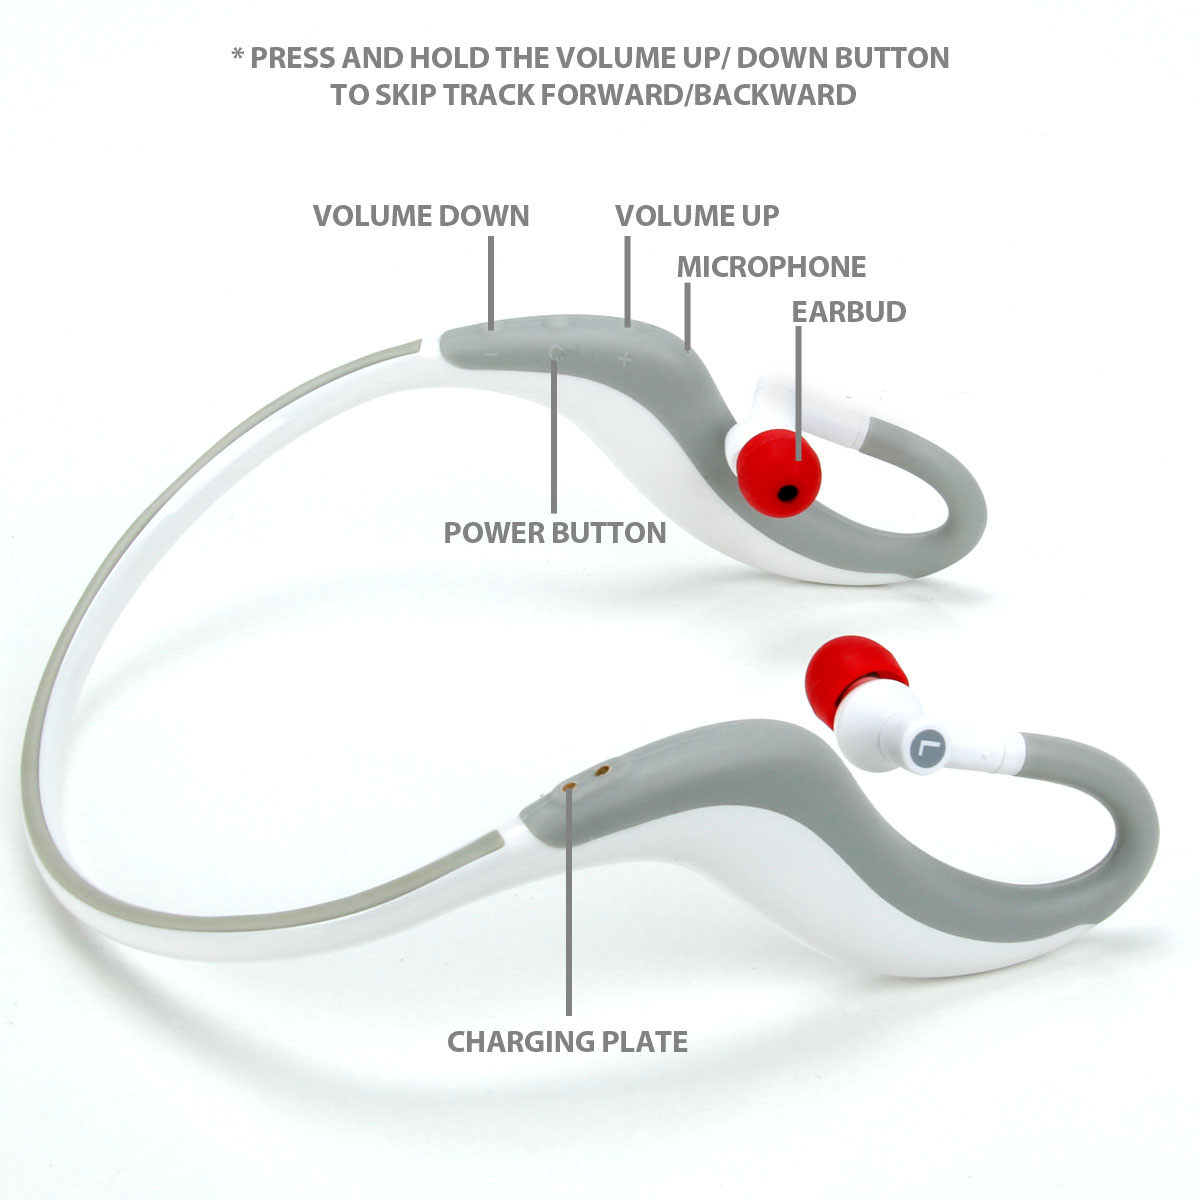 Bose earbuds iphone 6 - bose earbuds noise canceling iphone